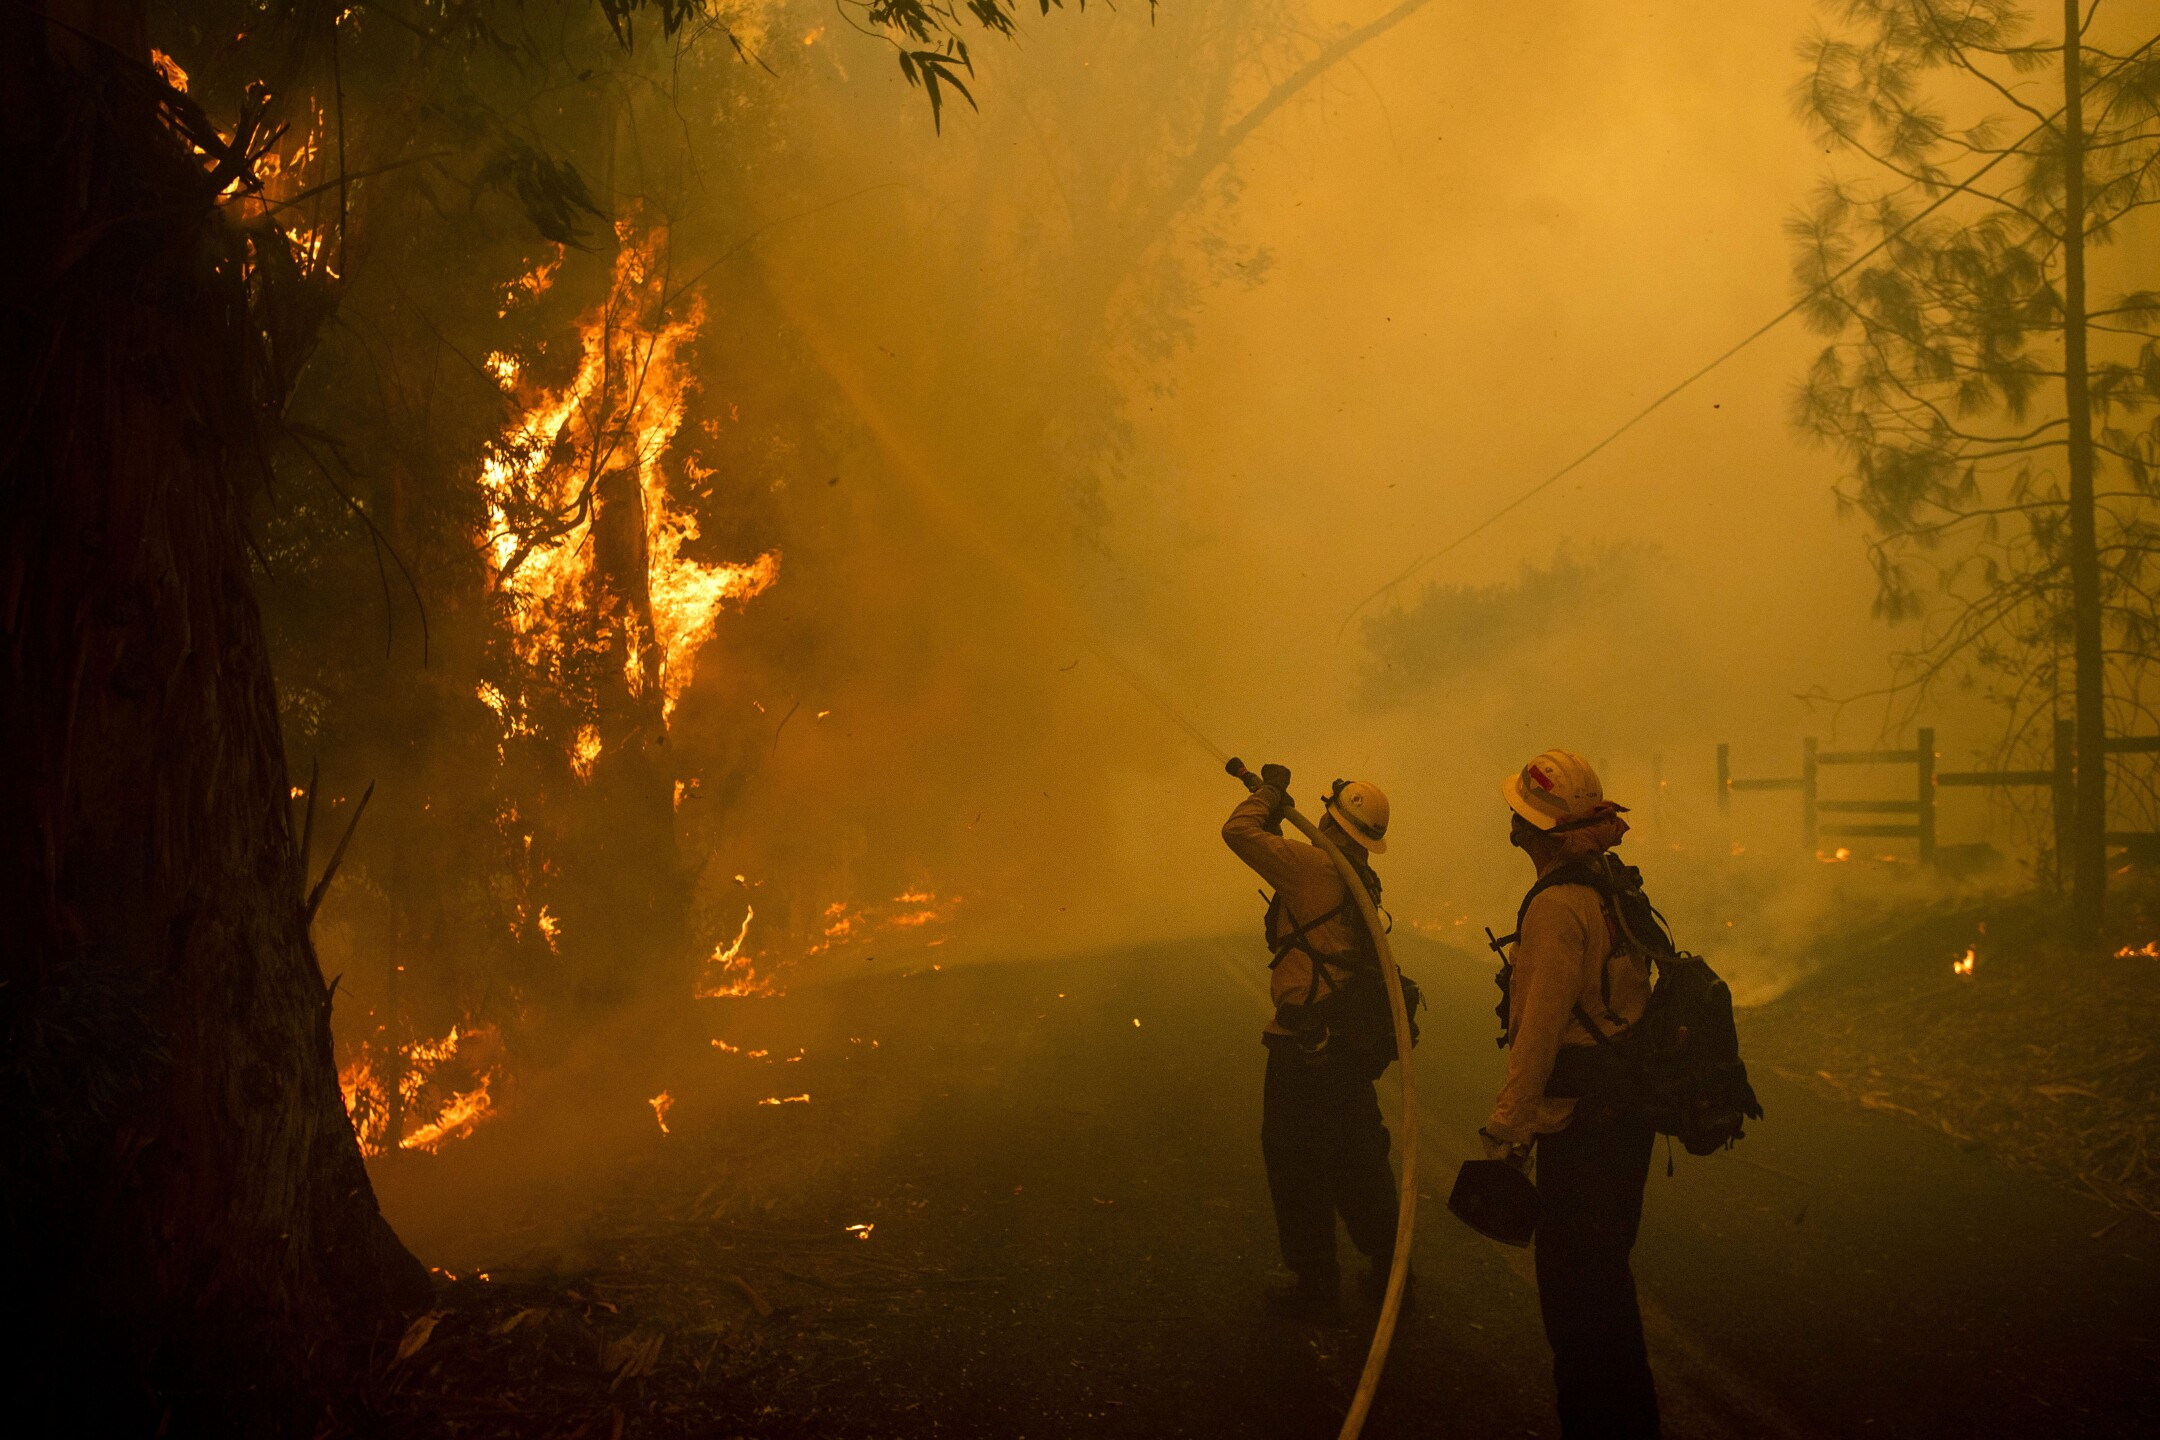 Photos: Wildfires rage in California, causing evacuations and power outages